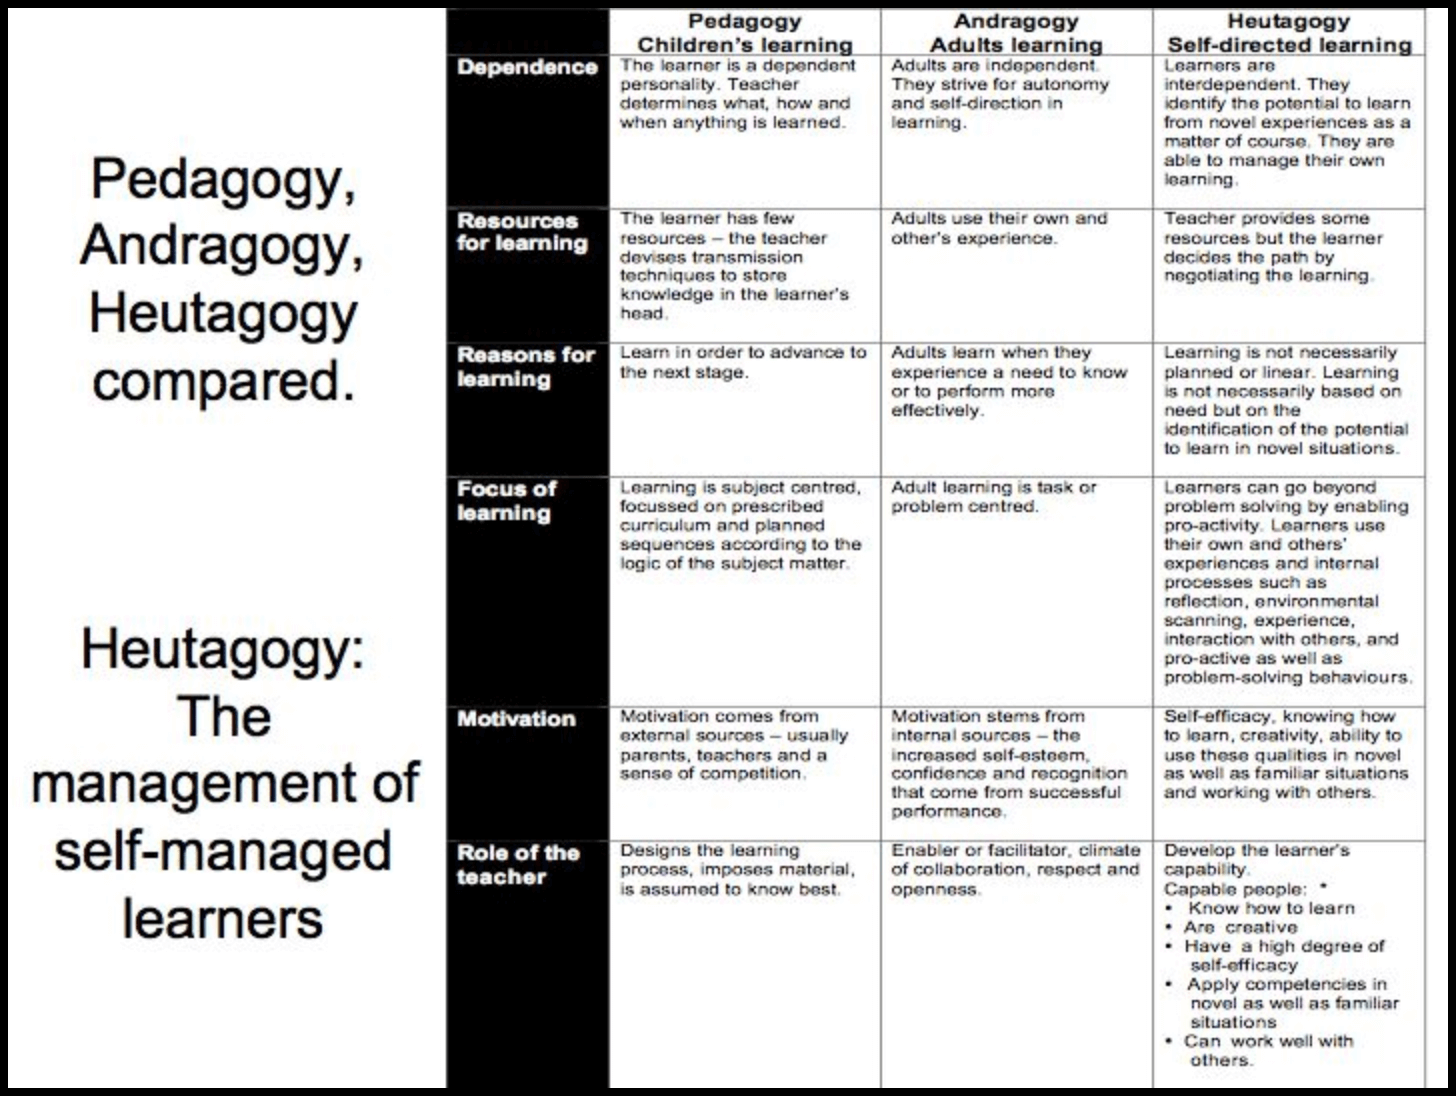 A chart comparing pedagogy, andragogy and heutagogy for the management of self-managed learners